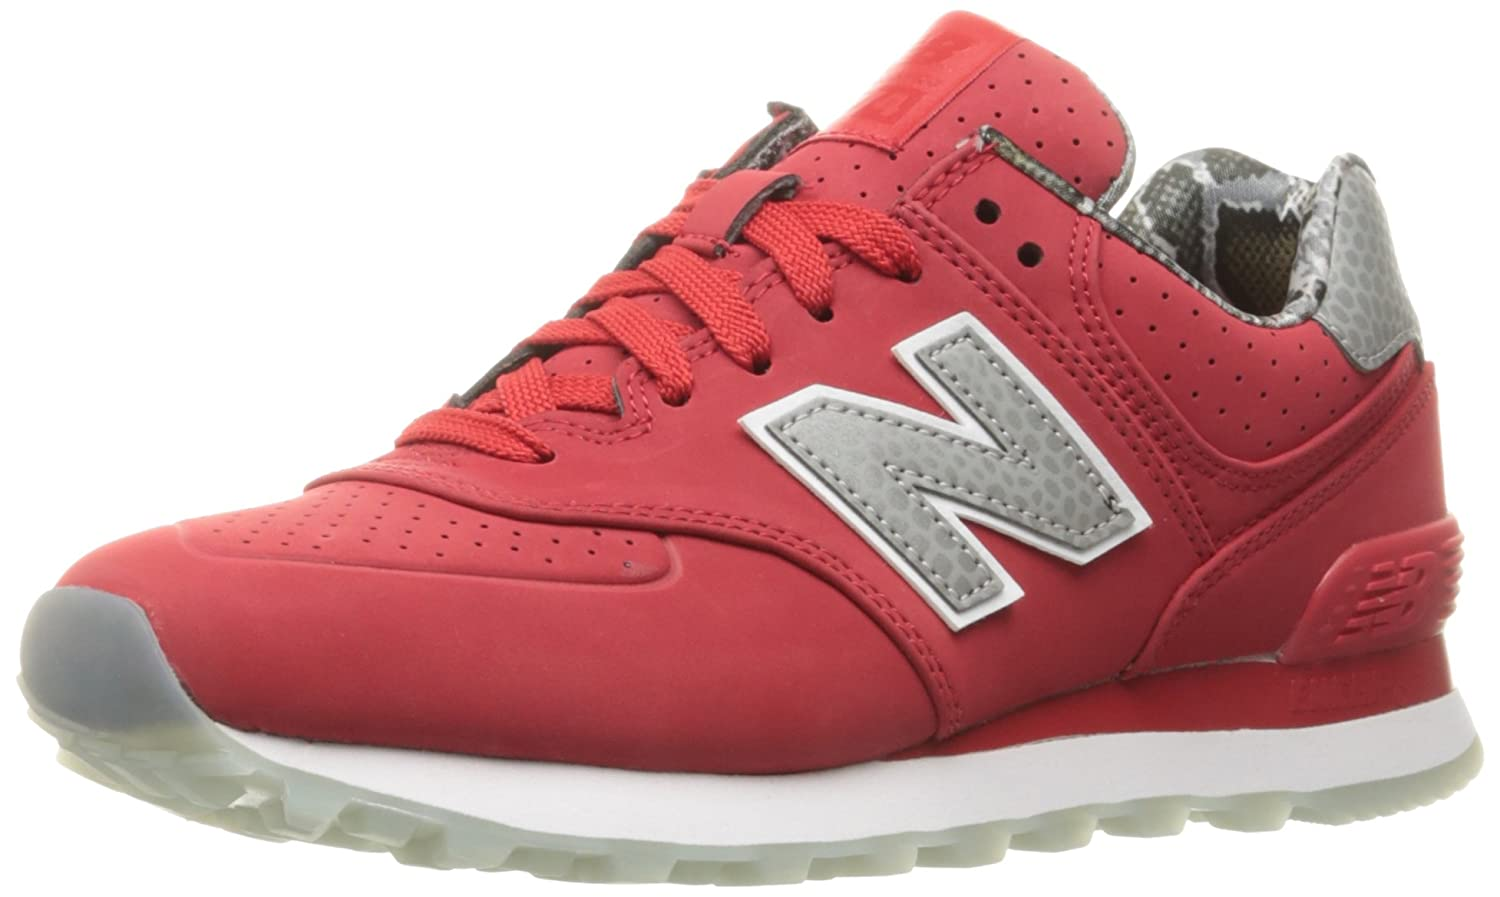 New Balance Women's WL574 Luxe Rep Sneaker B01FSIF22Y 6.5 B(M) US|Chinese Red/Chinese Red